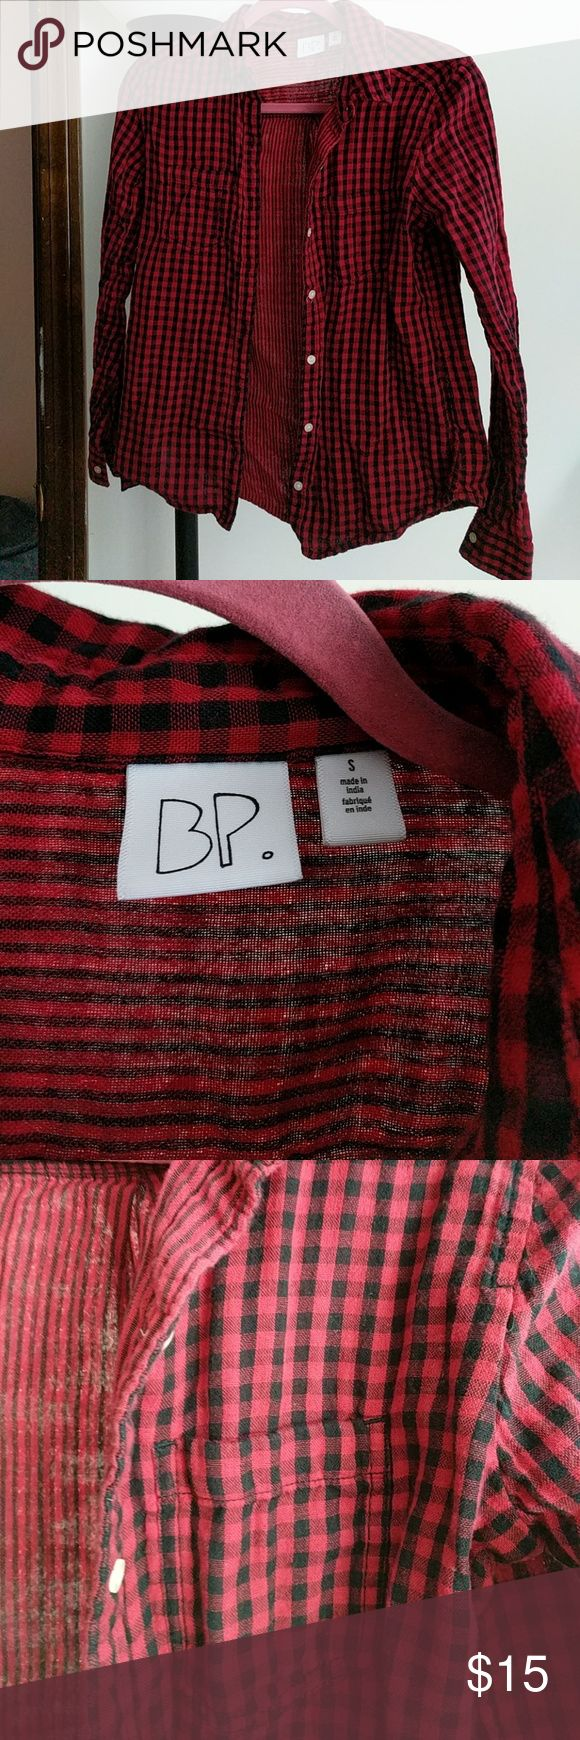 BP flannel shirt BP red and black flannel shirt size small. Worn and washed once. bp Tops